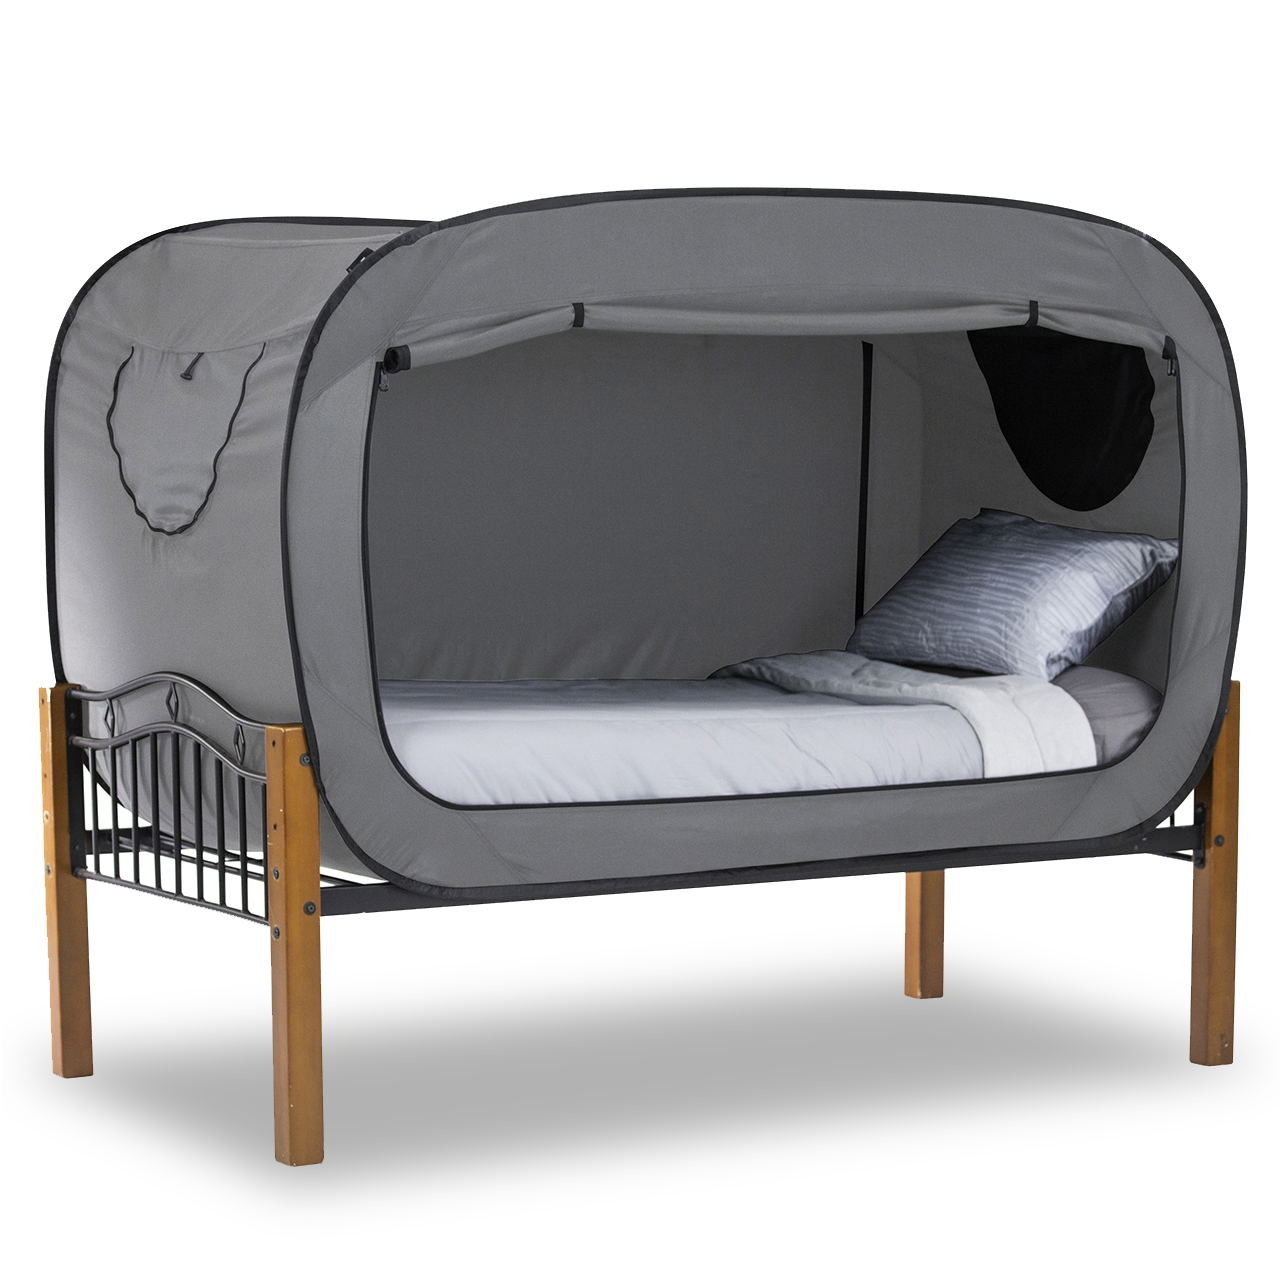 2019 New Foldable Four Seasons Quick Open Camping Tents Dormitory Privacy Bed  Ventilation  Bunk Insulation Tent Beach Tent